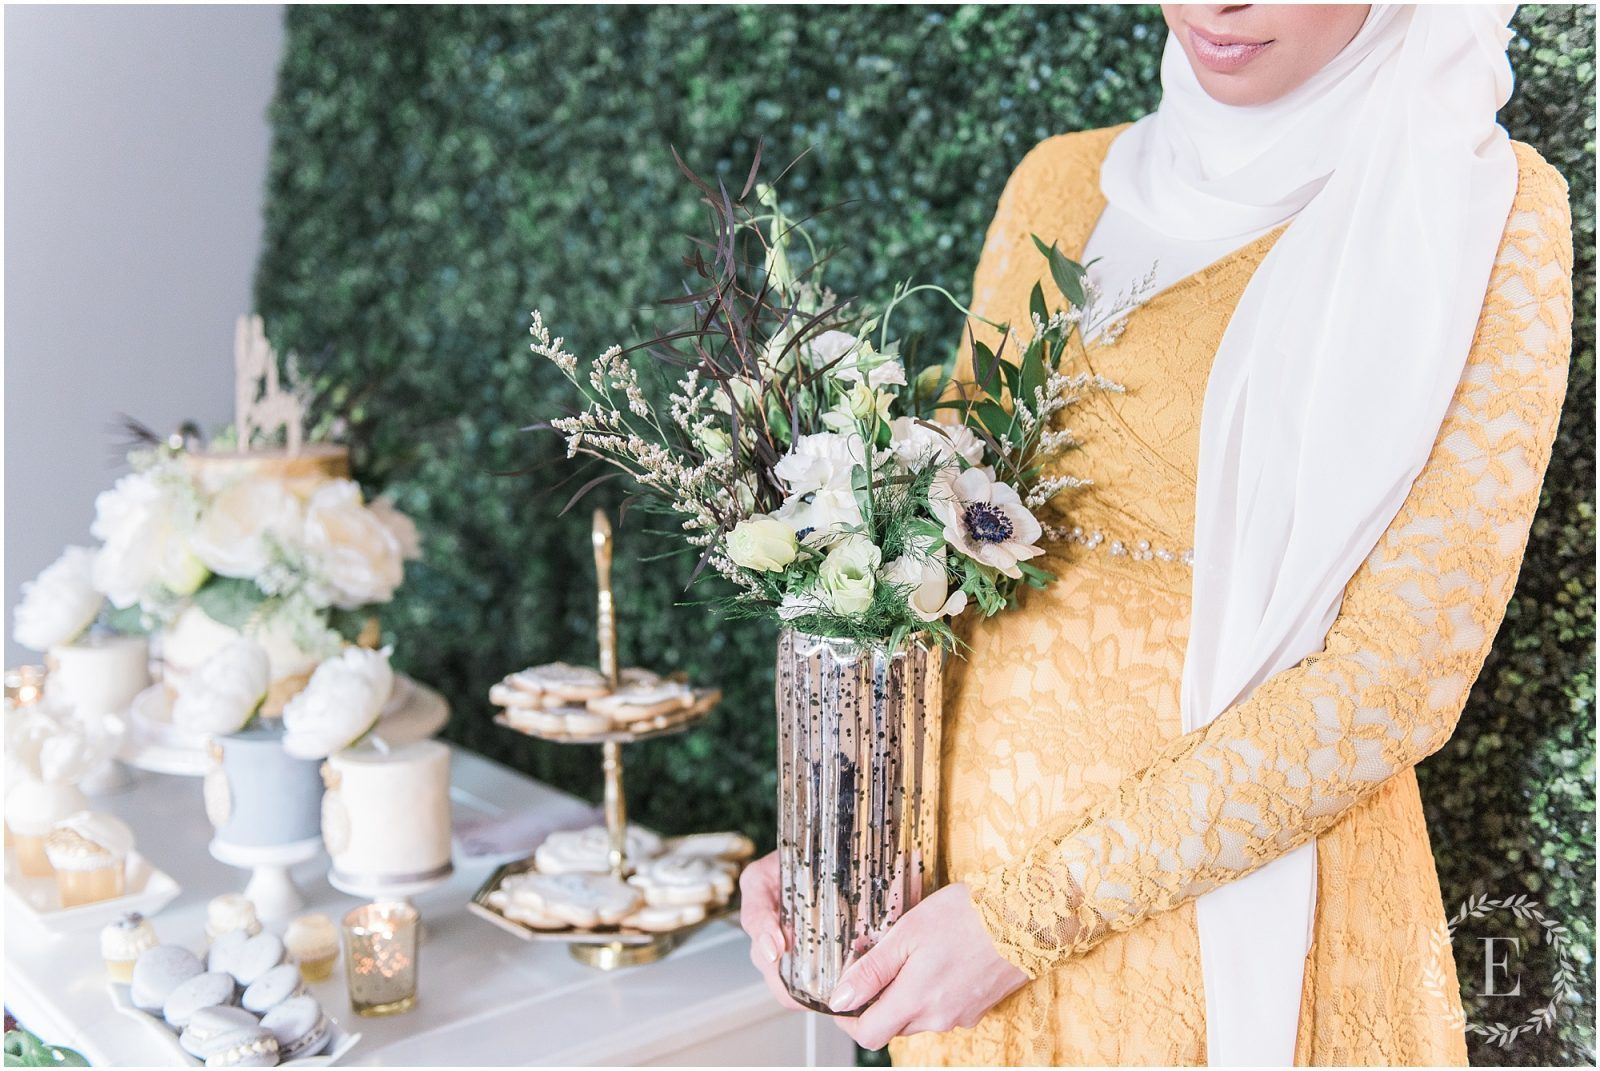 Modern high tea baby shower - Ottawa baby shower - hanan tehaili - hijabi maternity - grey, white and gold baby shower